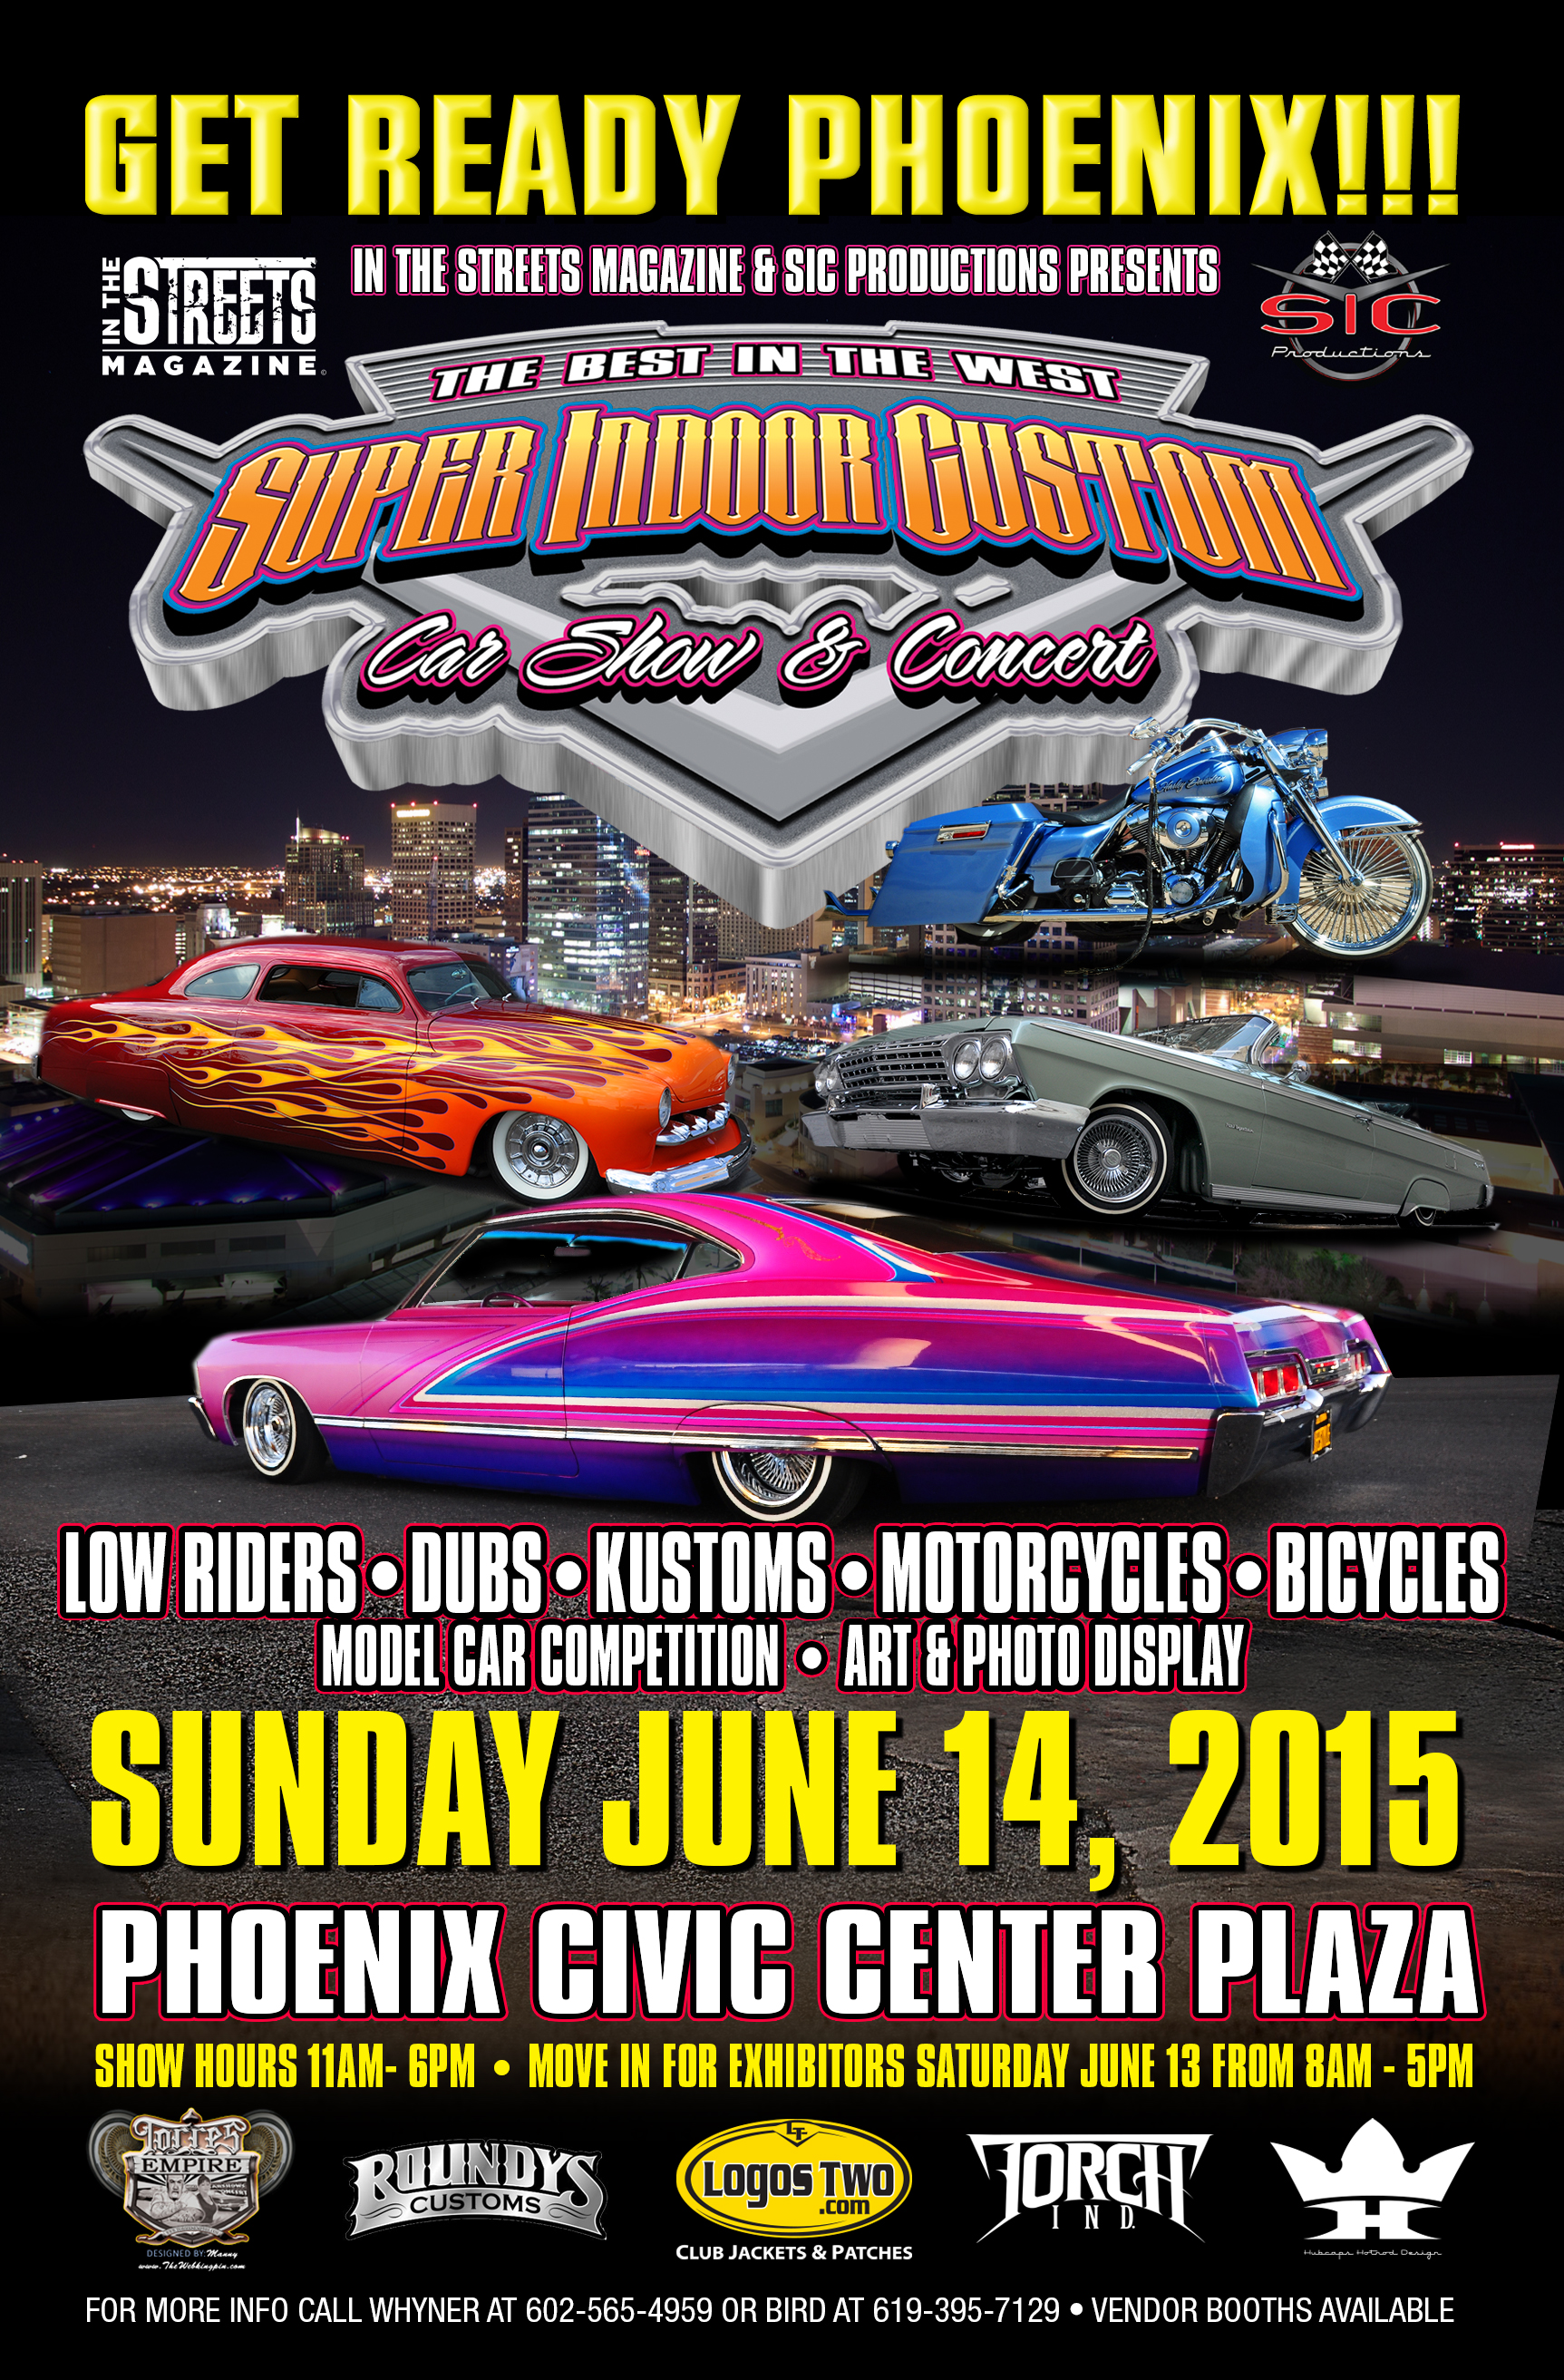 Super Indoor Custom Car Show Concert In ARIZONA XMan Show - Civic center car show